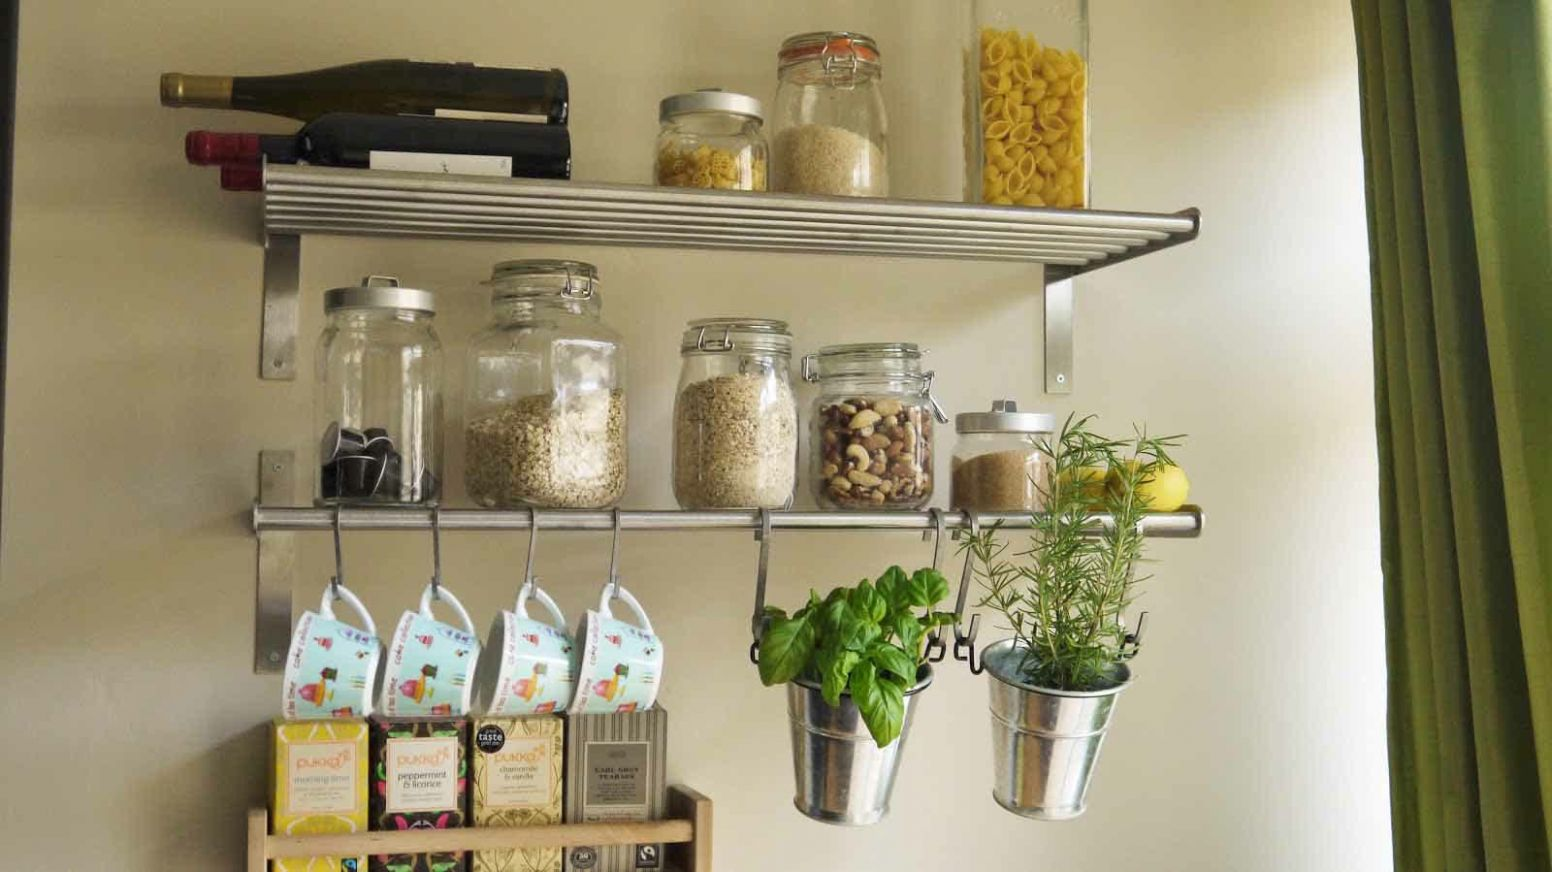 11 Clever And Easy Kitchen Organization Ideas You'll Love